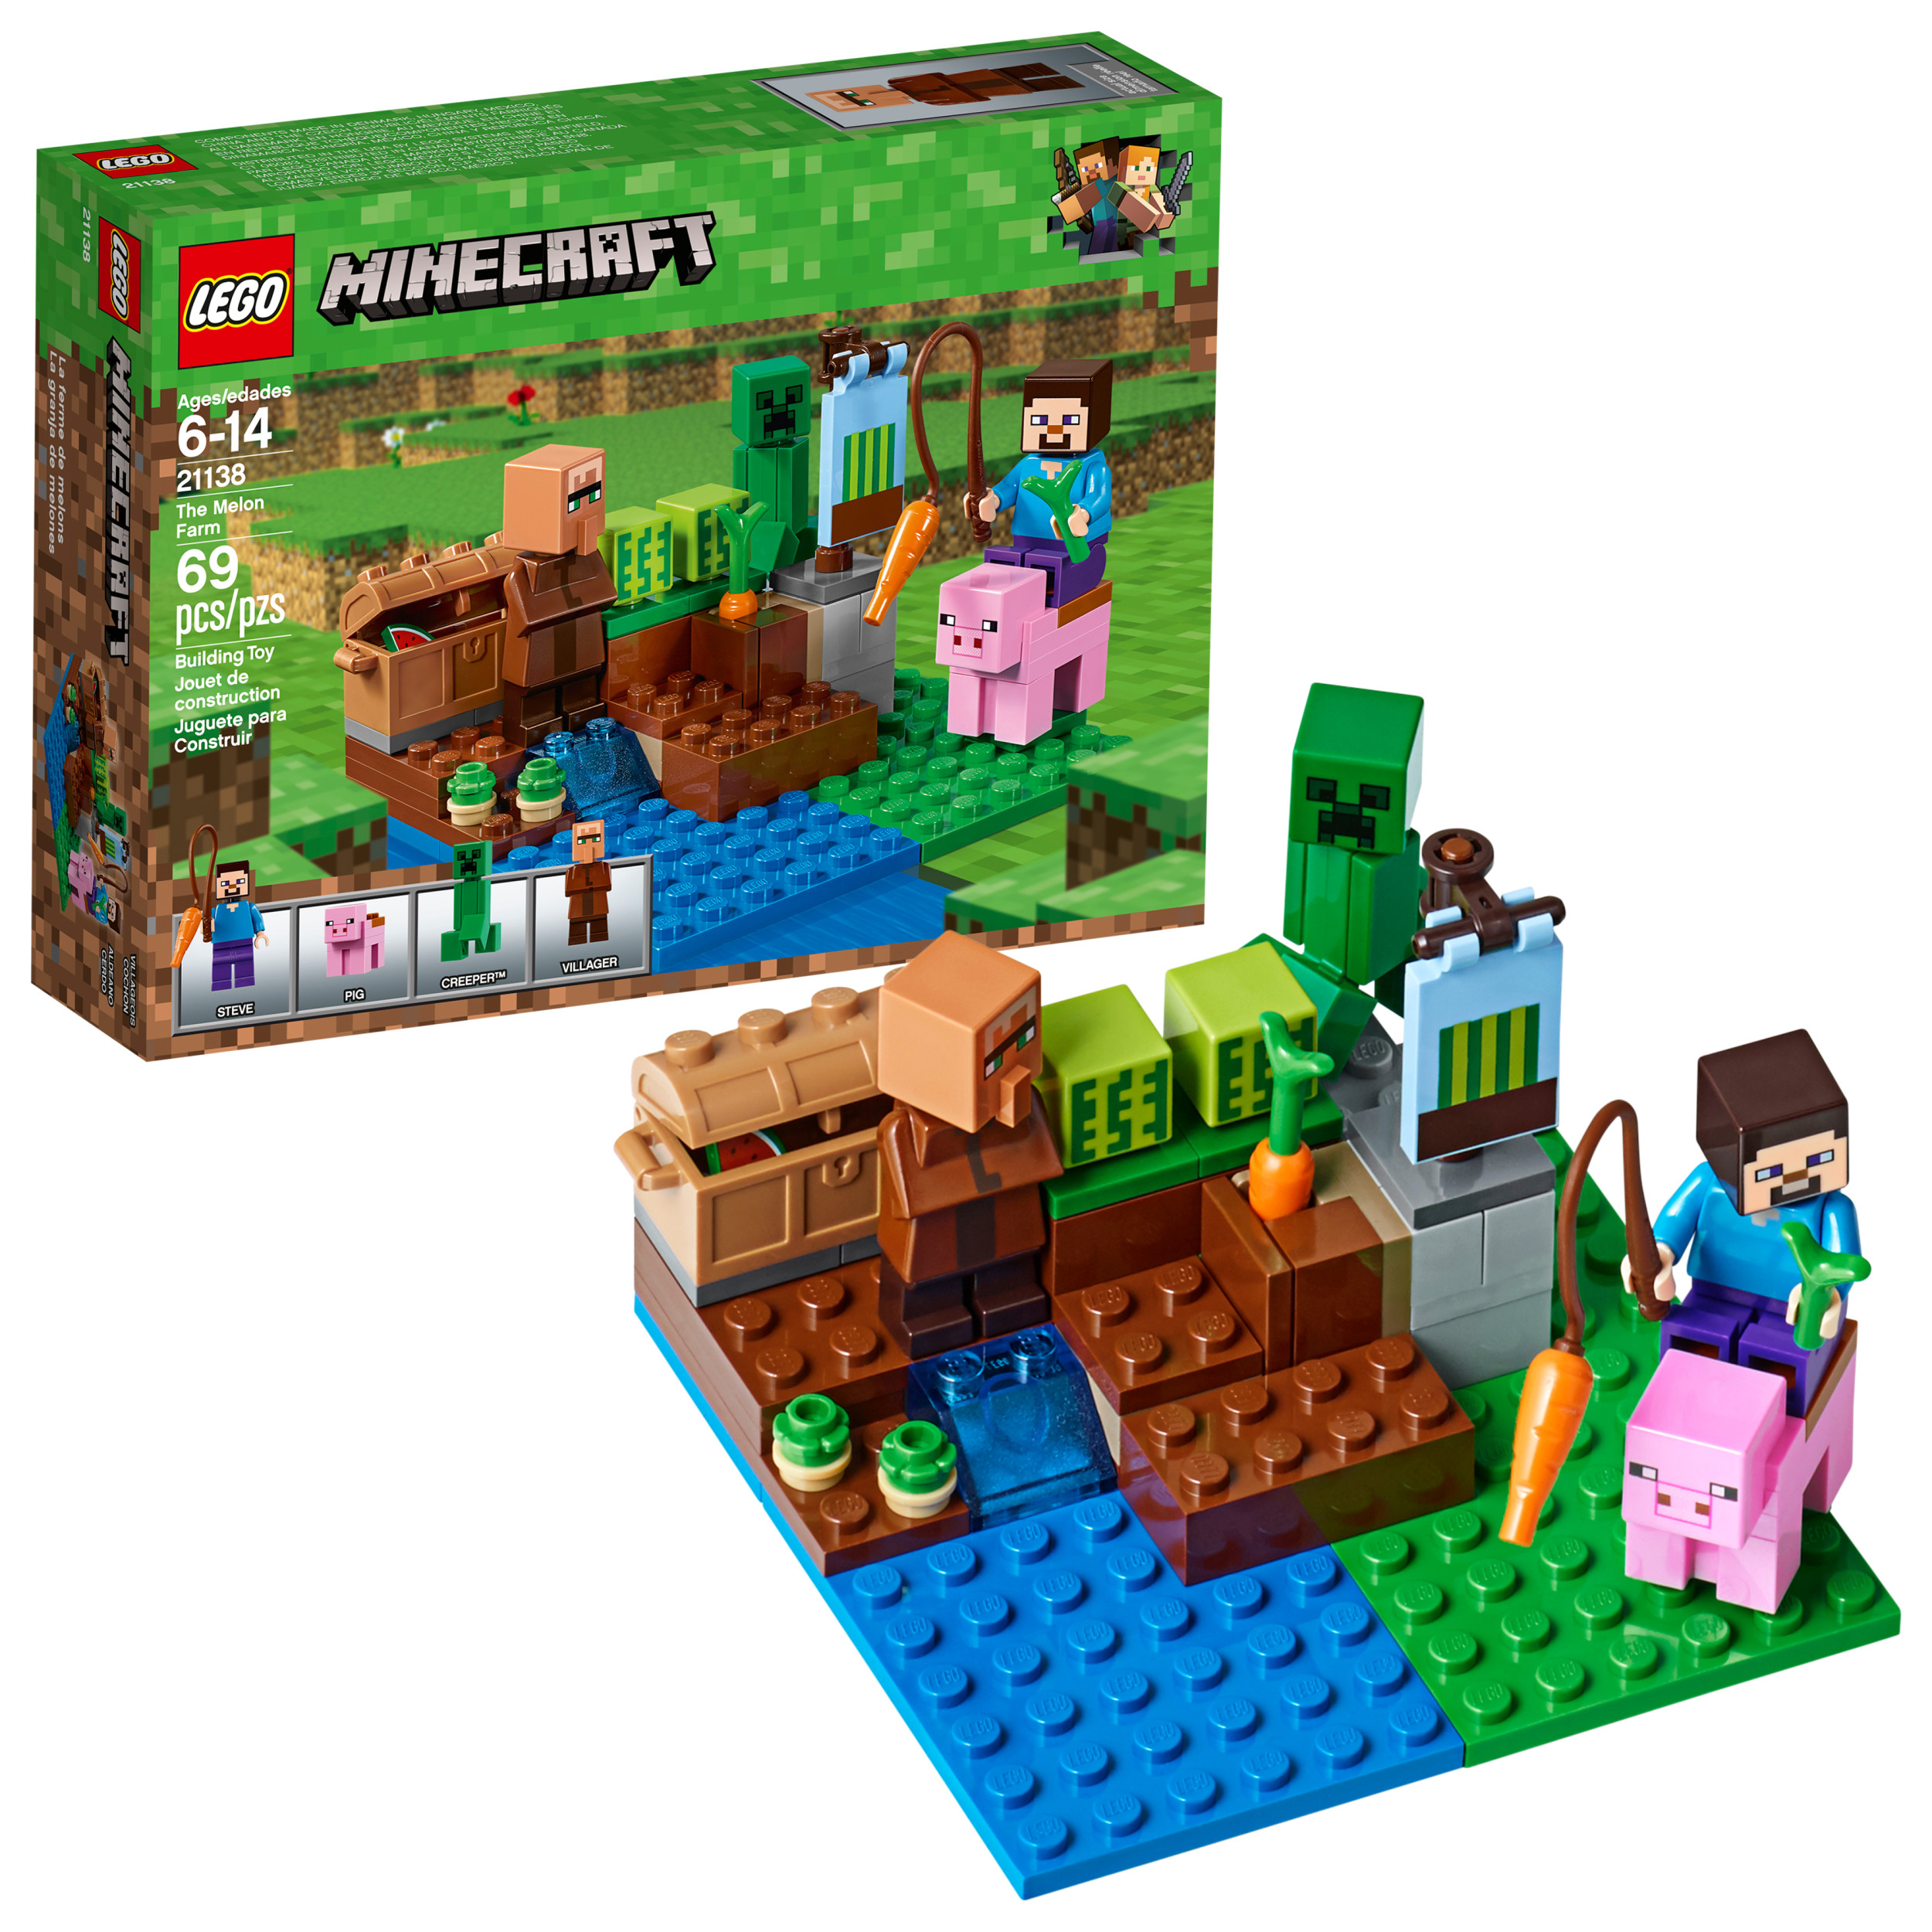 Lego Minecraft The Melon Farm 21138 by LEGO System Inc